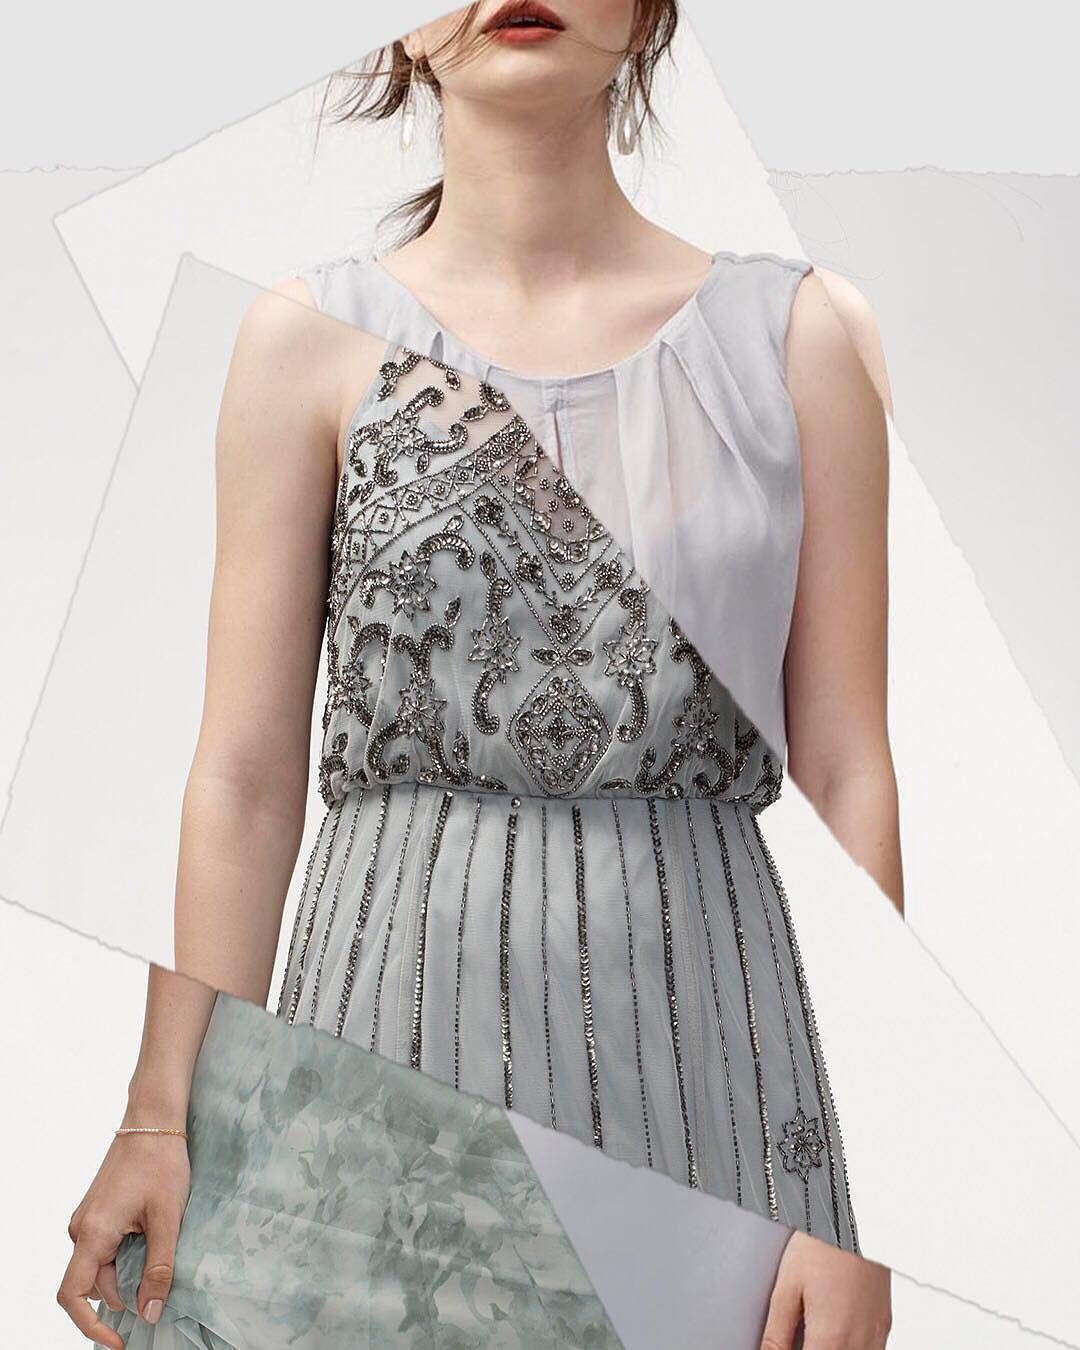 We canut lieu weure obsessed with these misty blue hues link in